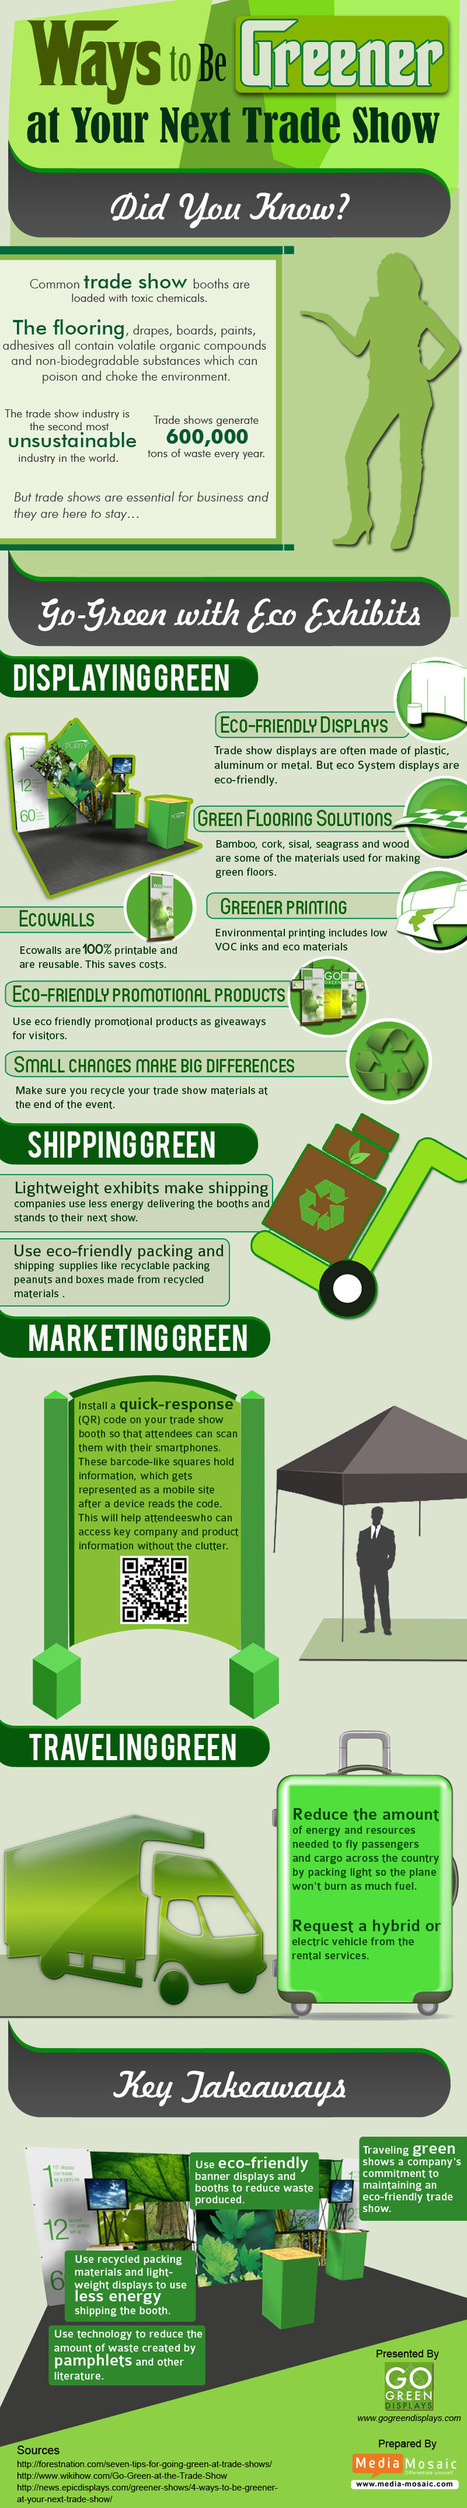 Ways to Be Greener at Your Next Trade Show [Infographic] | Trade Shows | Scoop.it